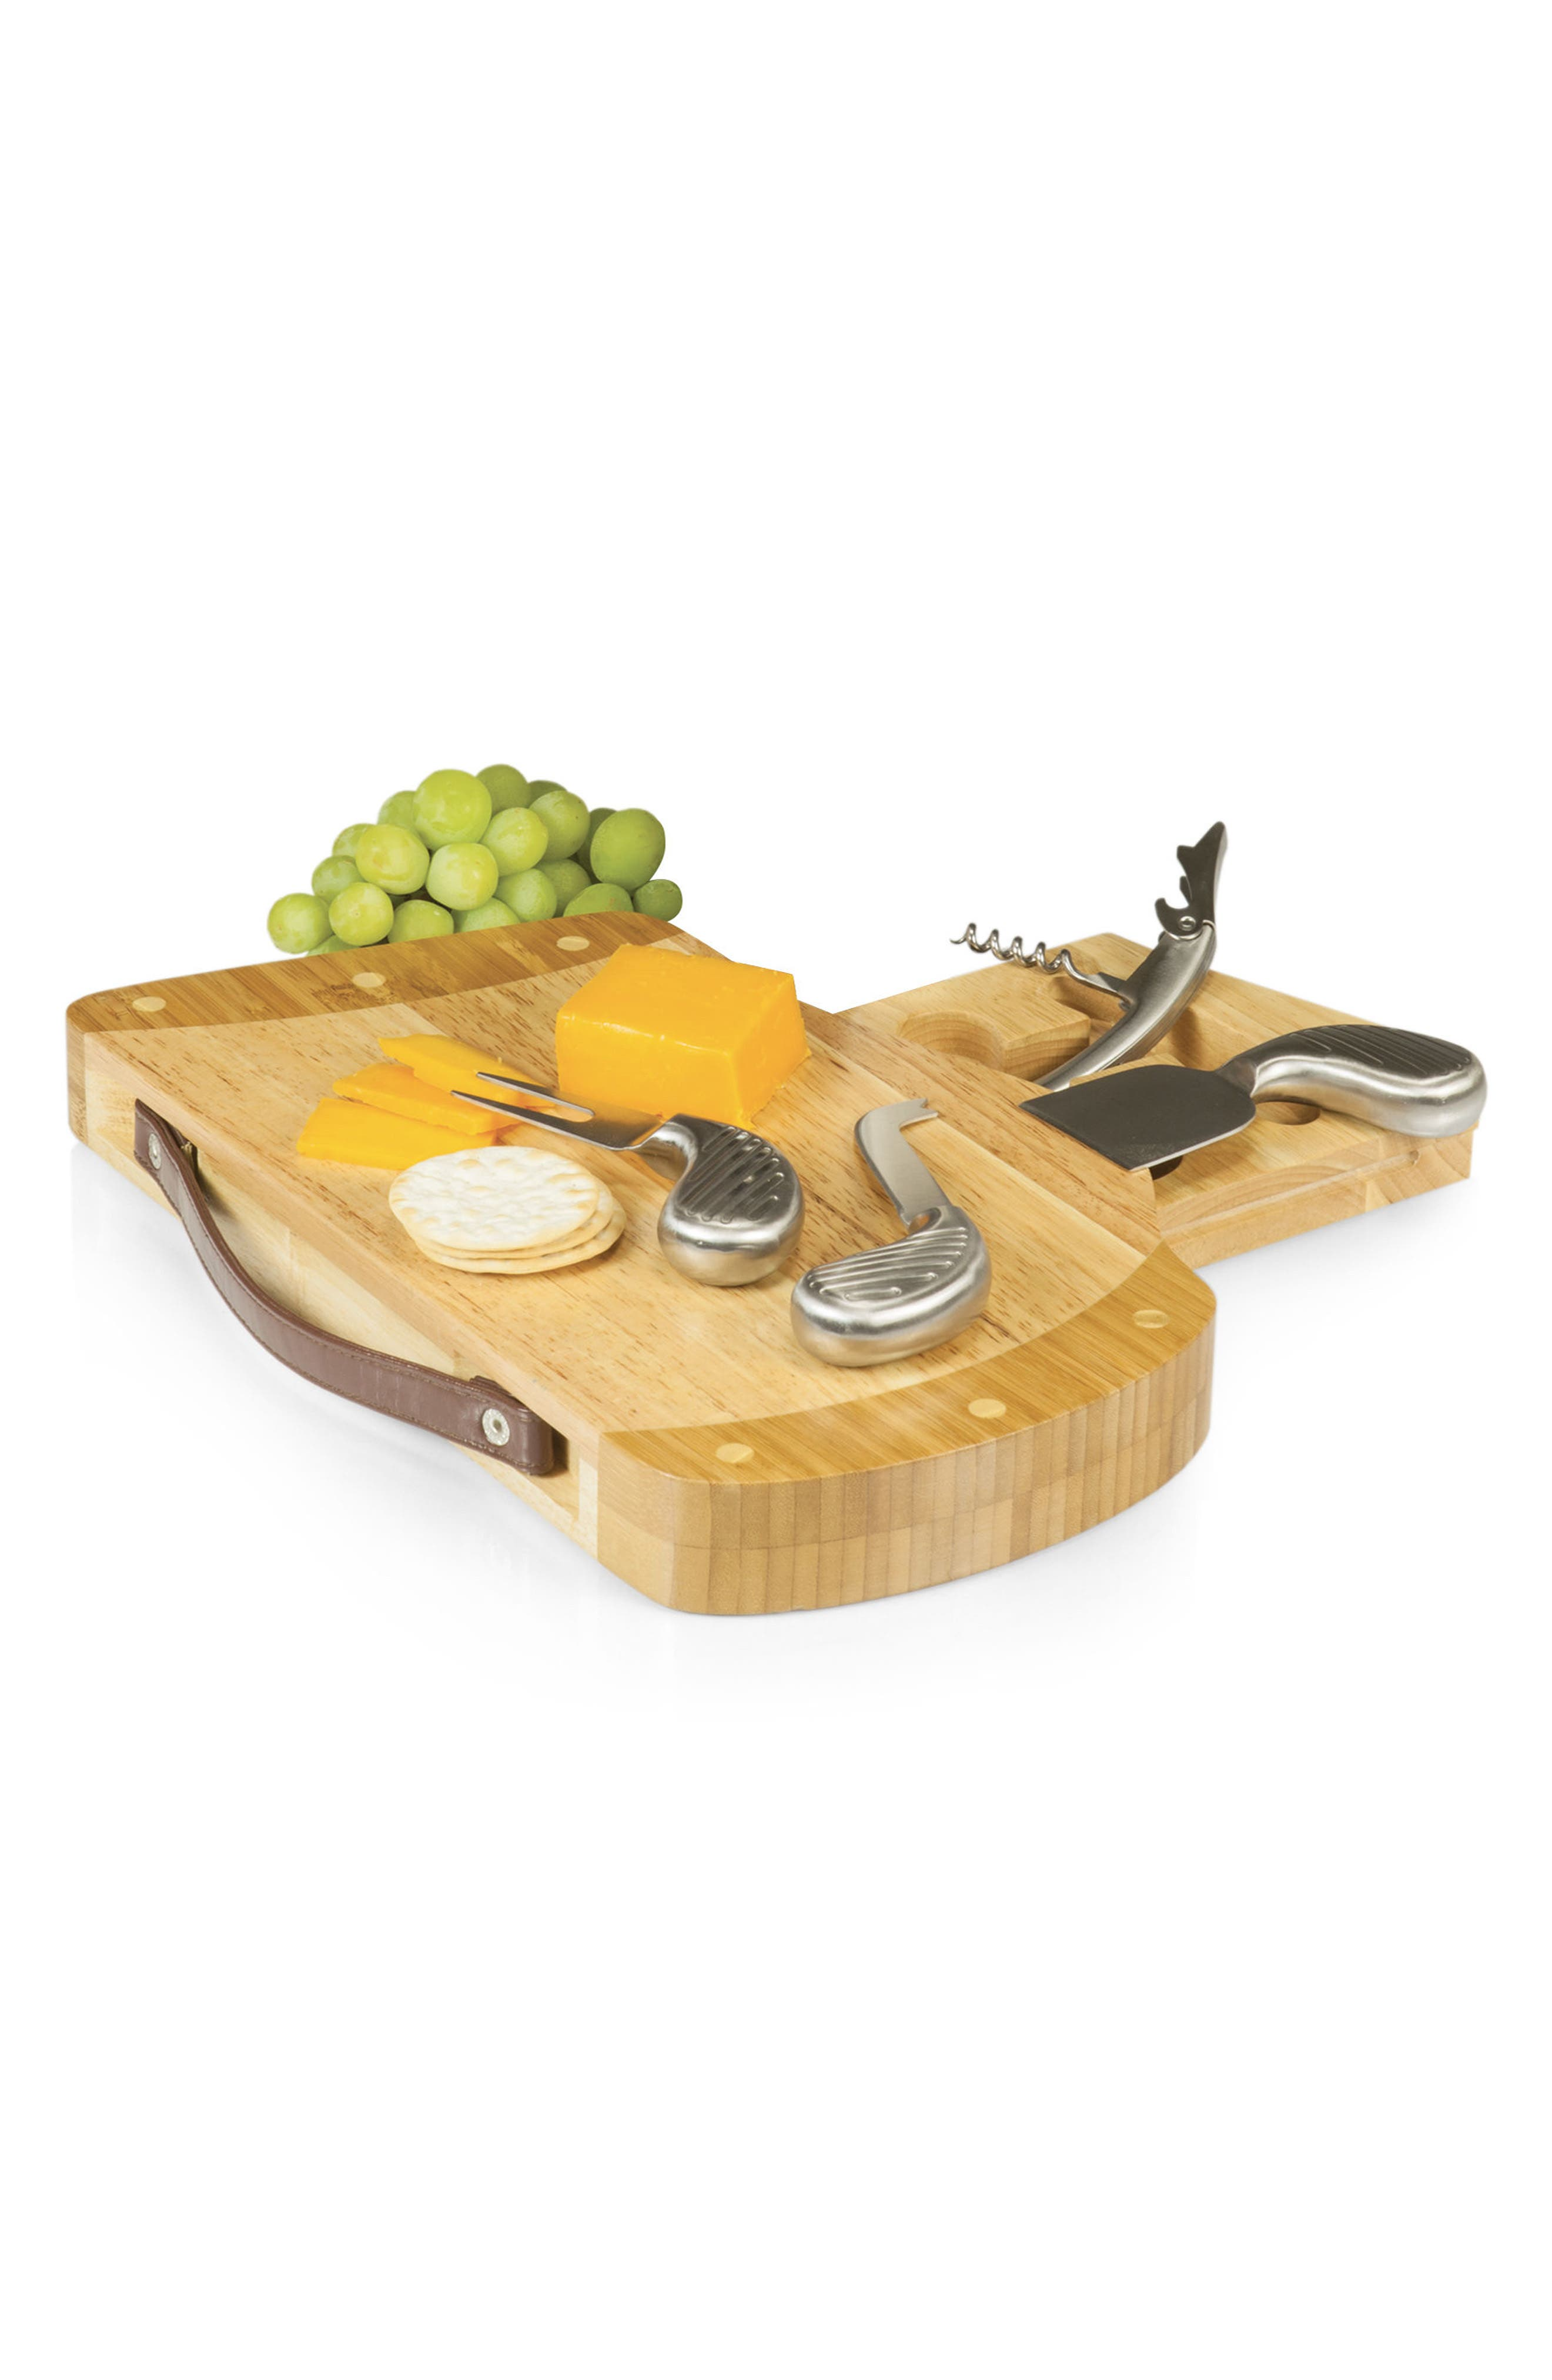 Caddy Cheese Board & Tools Set,                             Alternate thumbnail 7, color,                             200